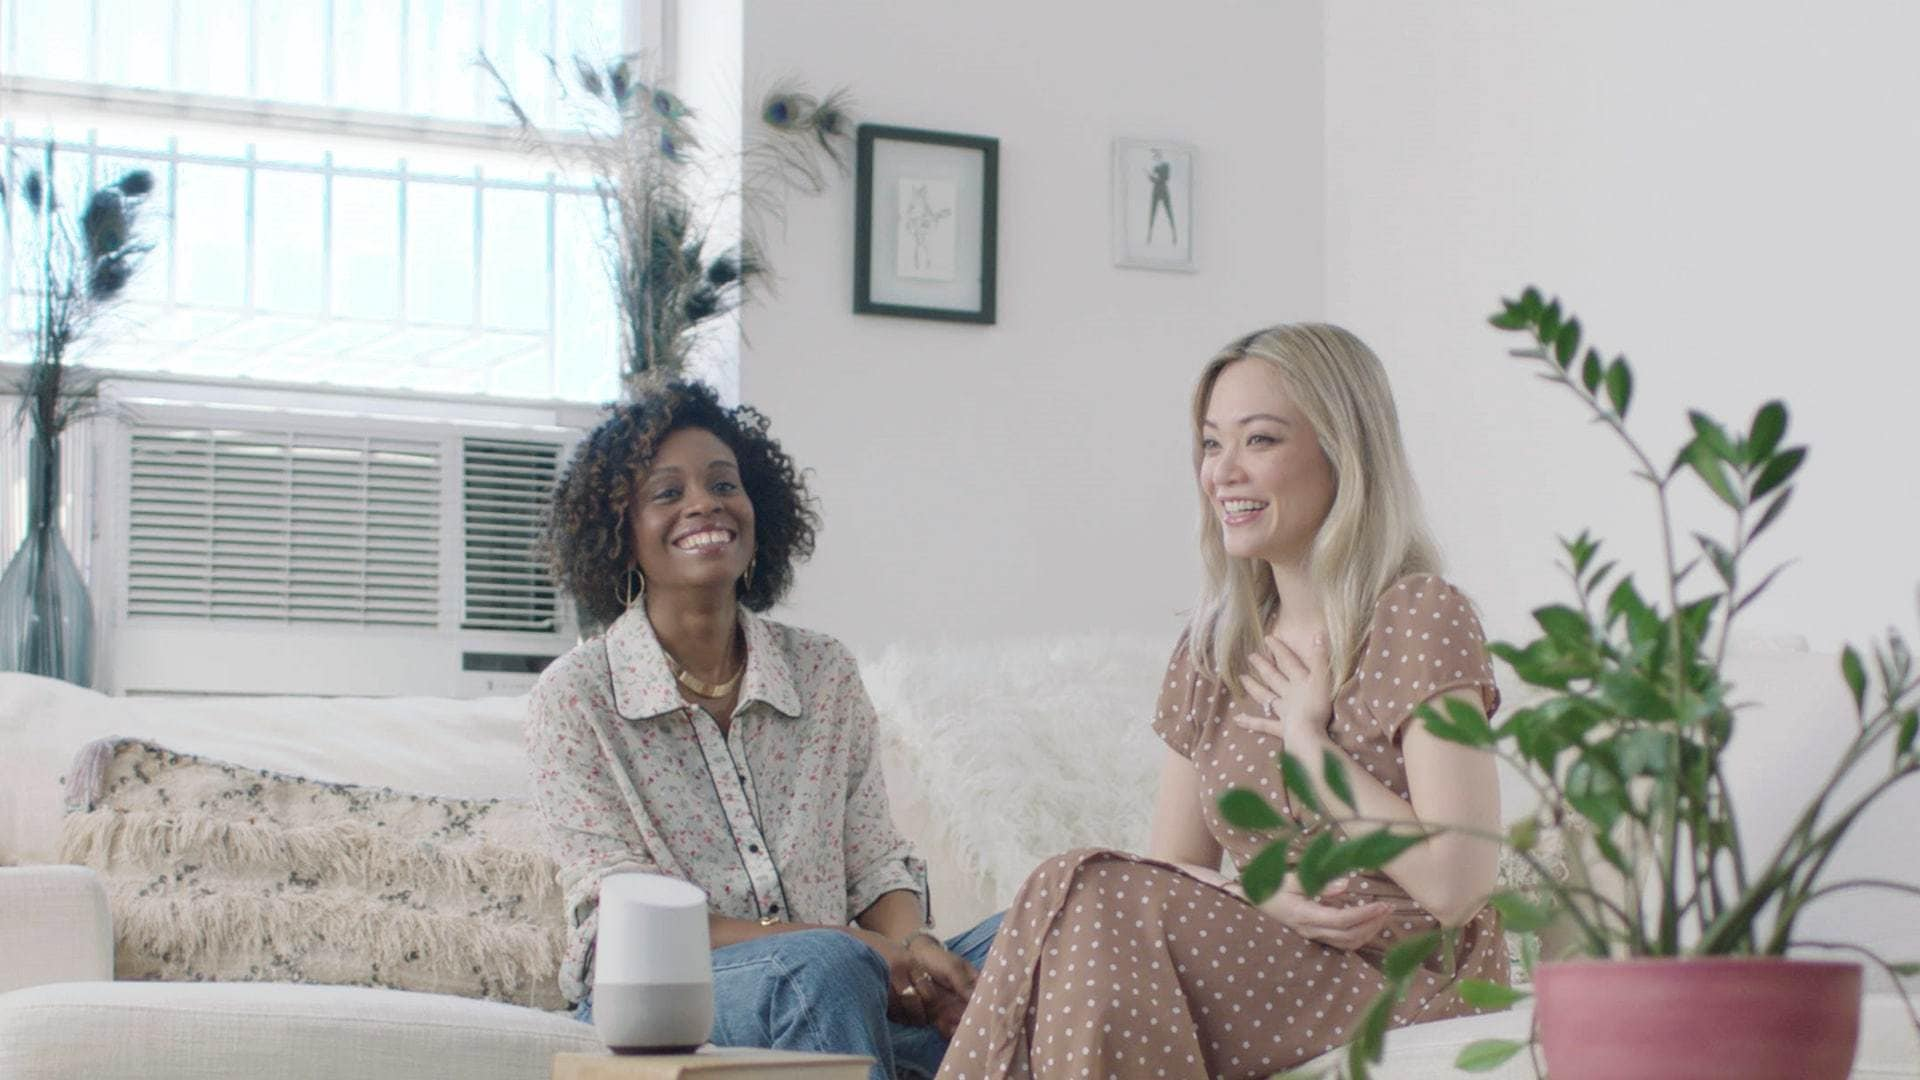 two women on the sofa laughing with a Google Home Assistant device on the sofa